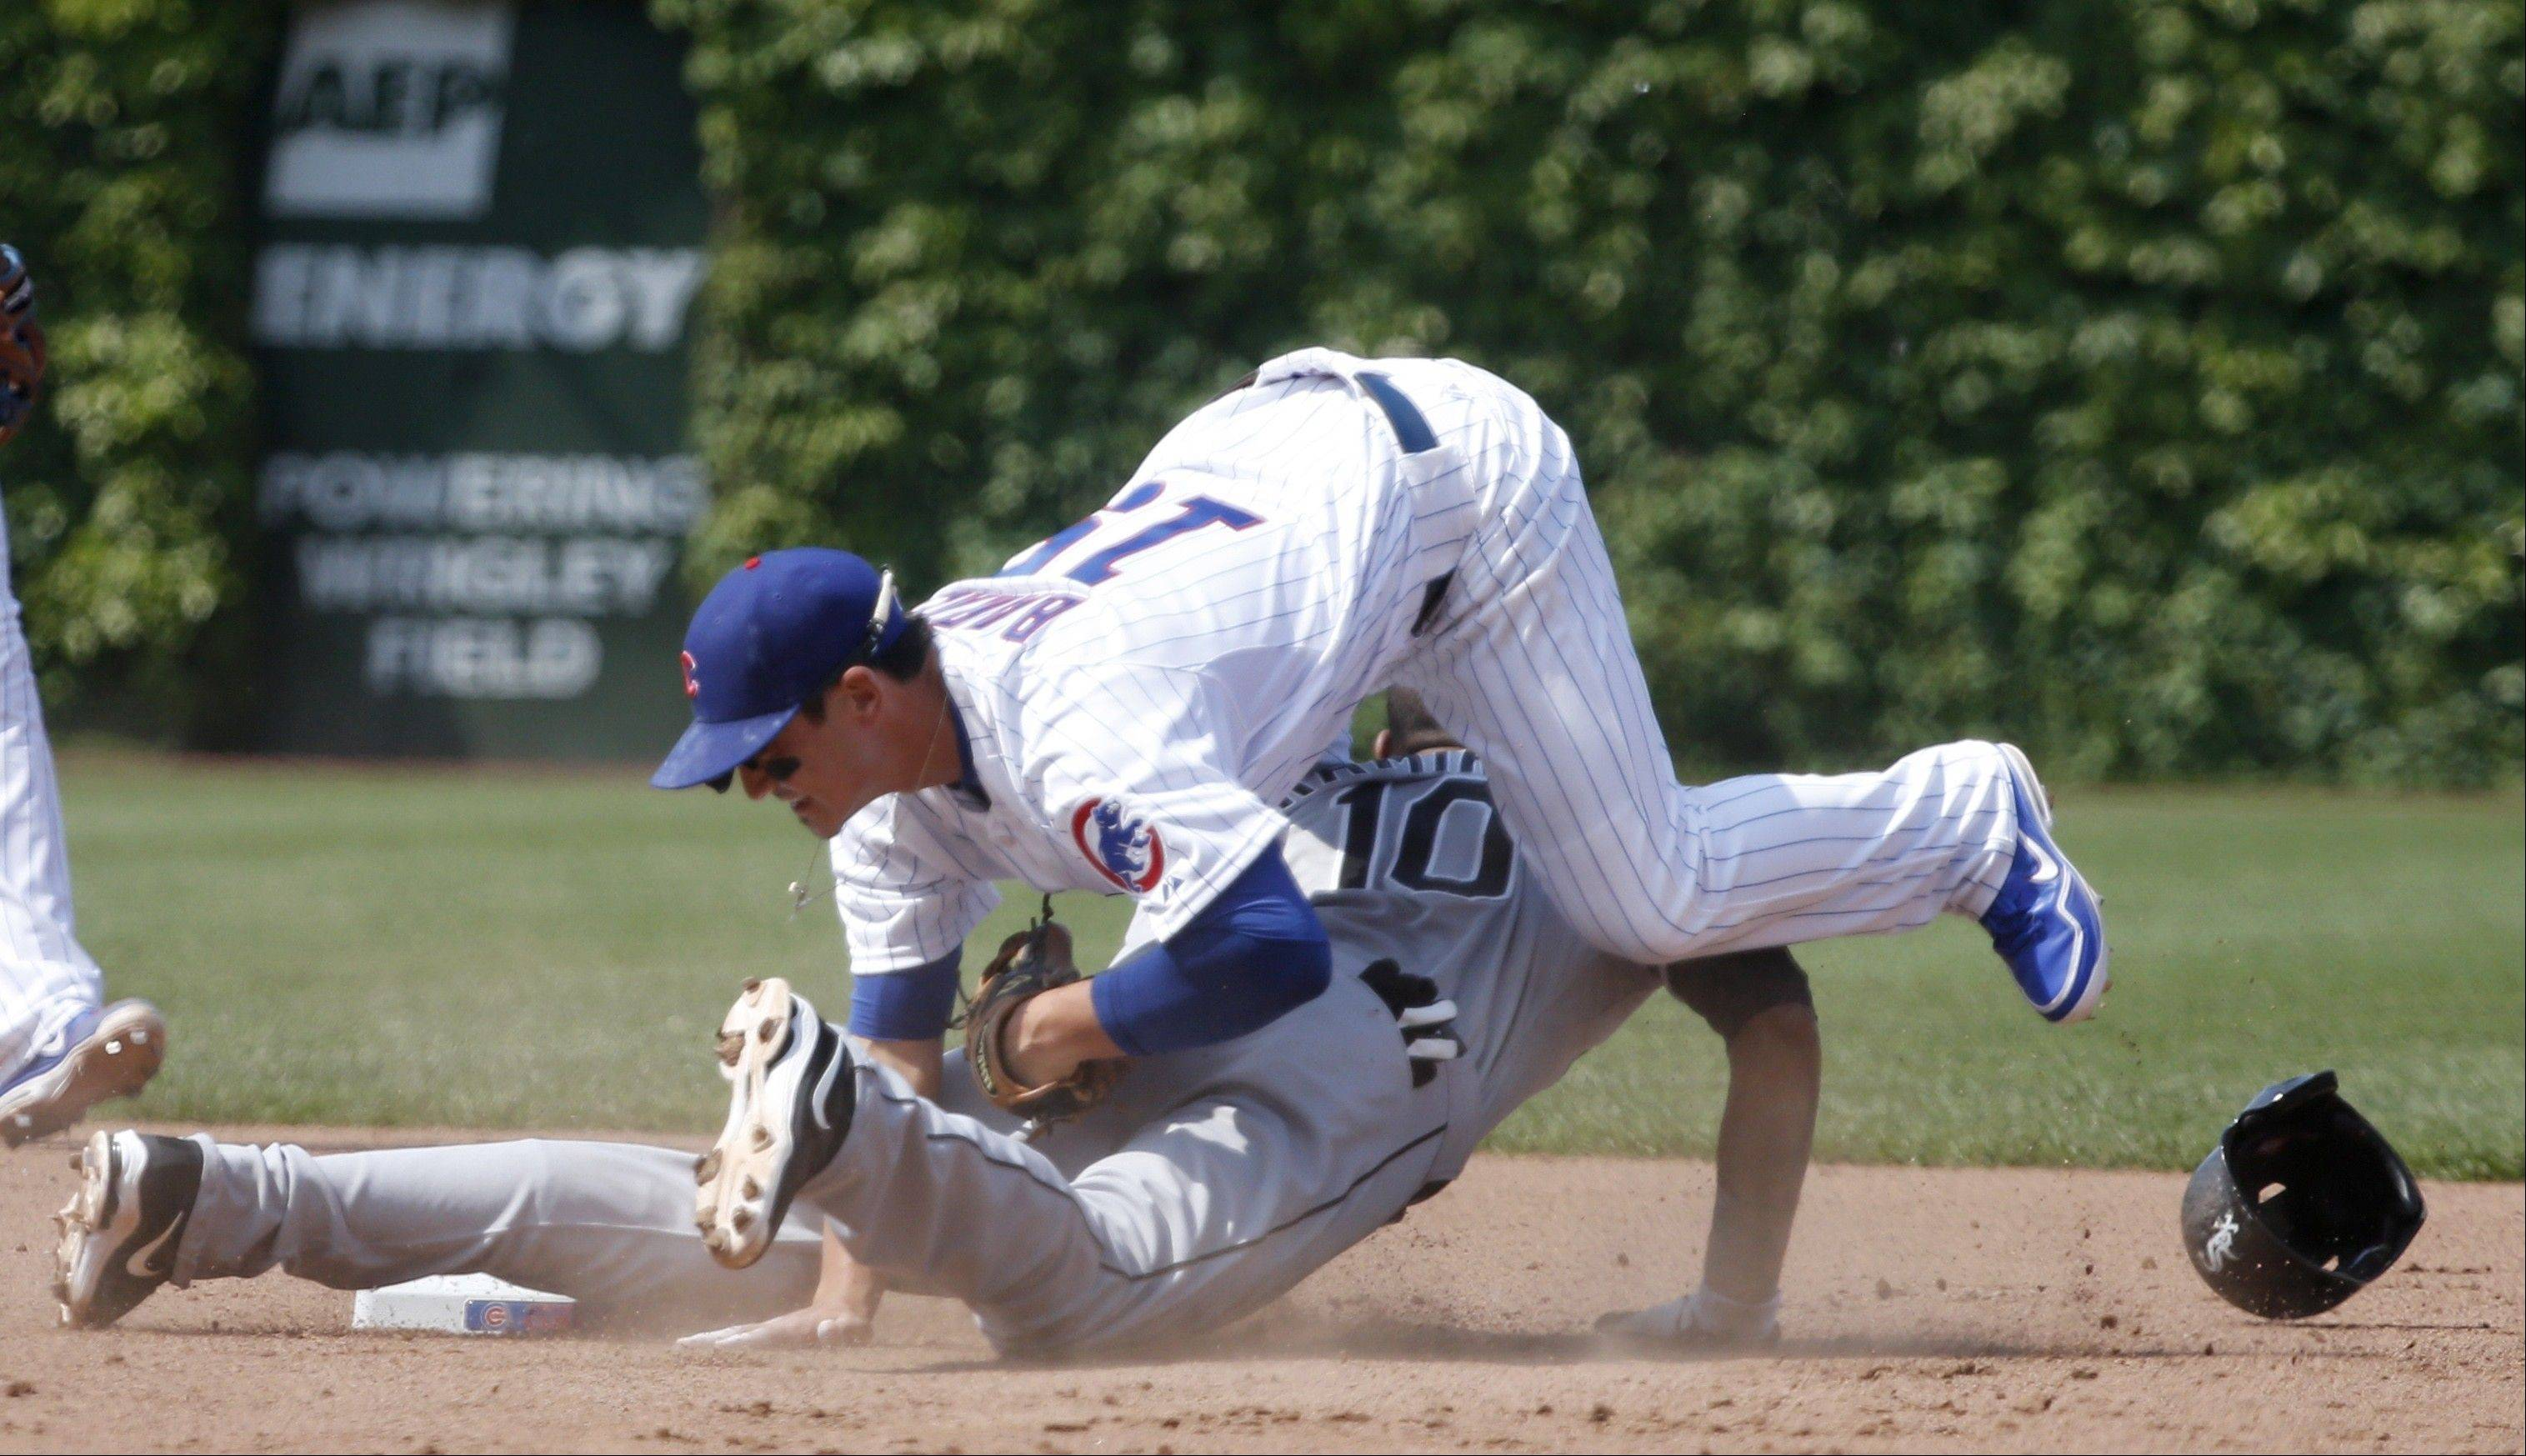 Chicago White Sox's Alexei Ramirez steals second as Chicago Cubs second baseman Darwin Barney (15) is unable to handle a throw from catcher Dioner Navarro during the fifth inning of a interleague baseball game Wednesday, May 29, 2013, in Chicago. (AP Photo/Charles Rex Arbogast)